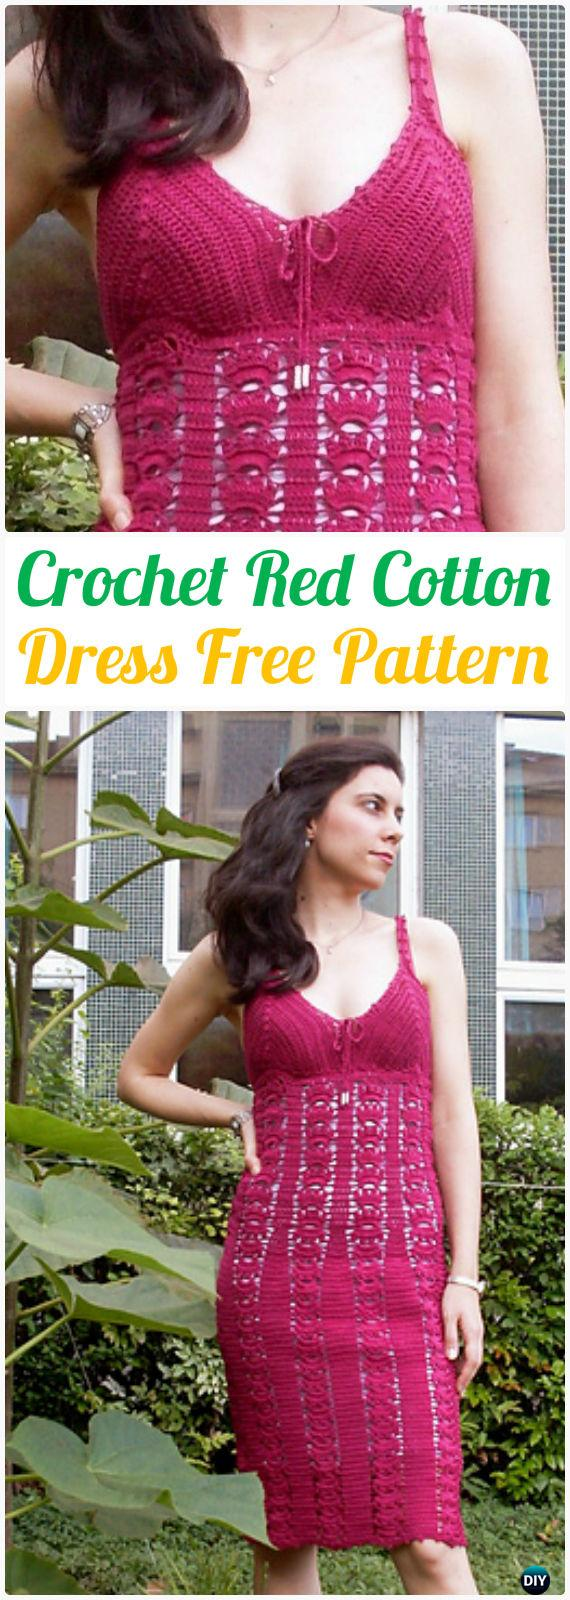 Crochet Red cotton Dress Free Pattern - Crochet Women Dress Free Patterns